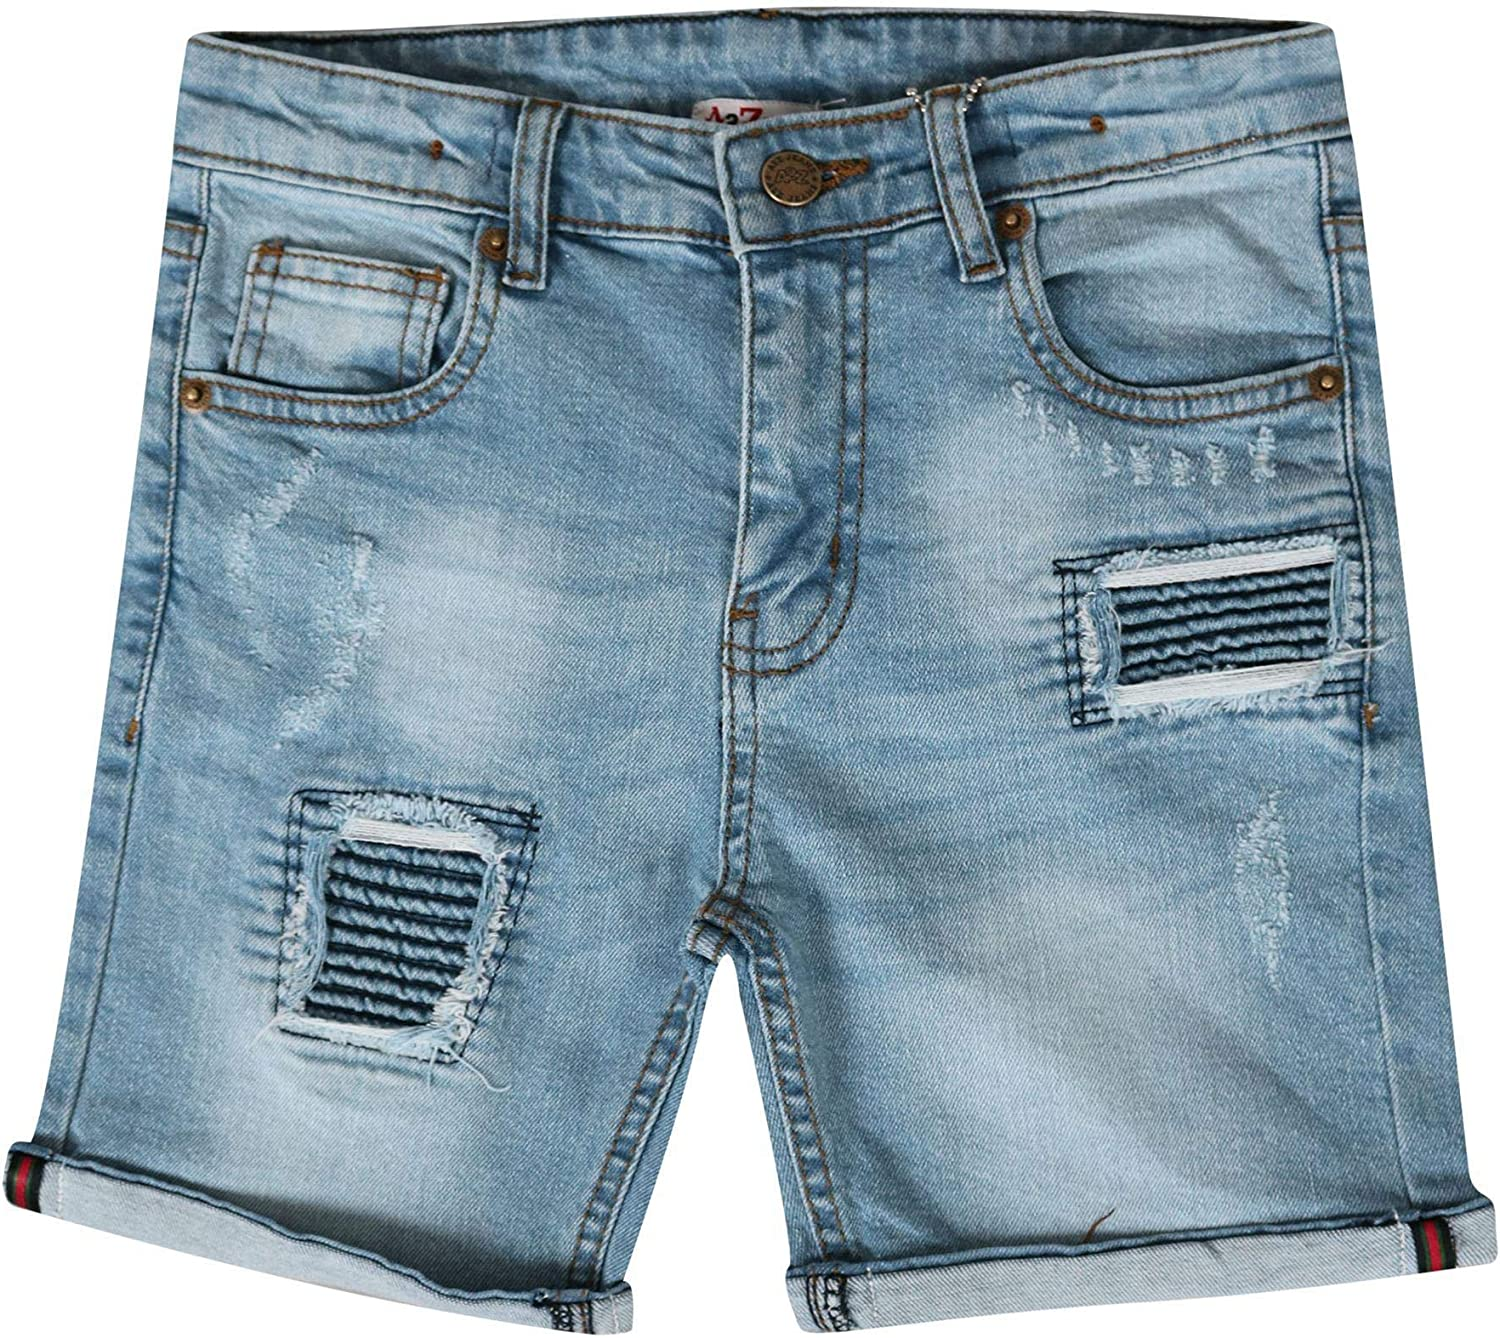 YAANCUN Boys Denim Shorts Bermuda Cotton Adjustable Waist 3-8 Years